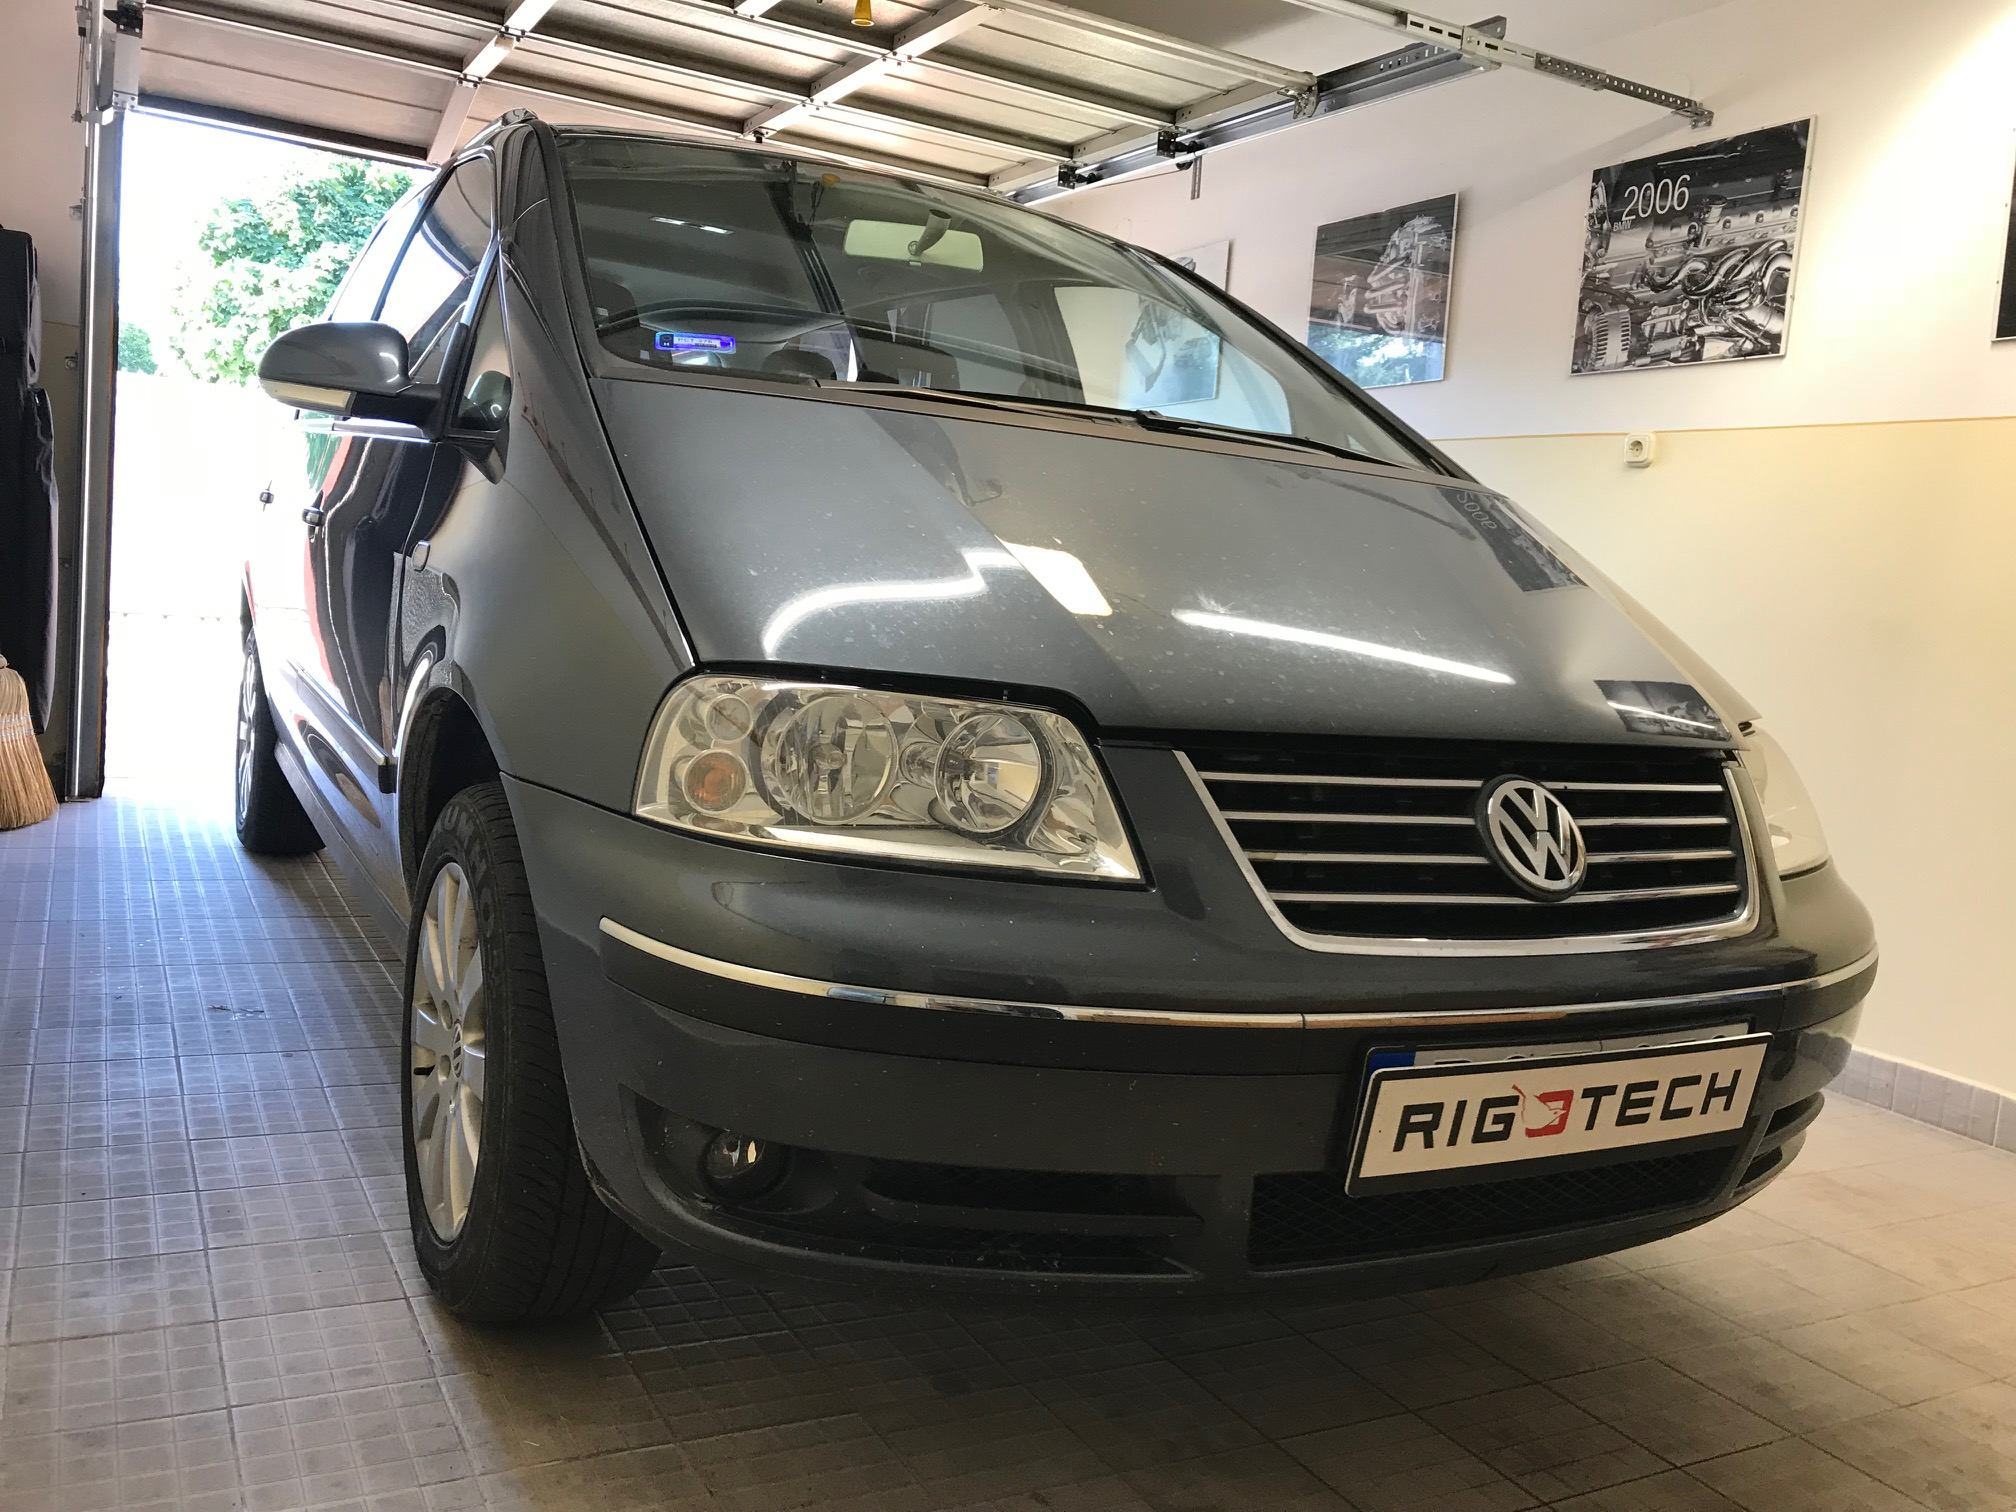 Vw-Shara-20tdi-140Le-Chiptuning